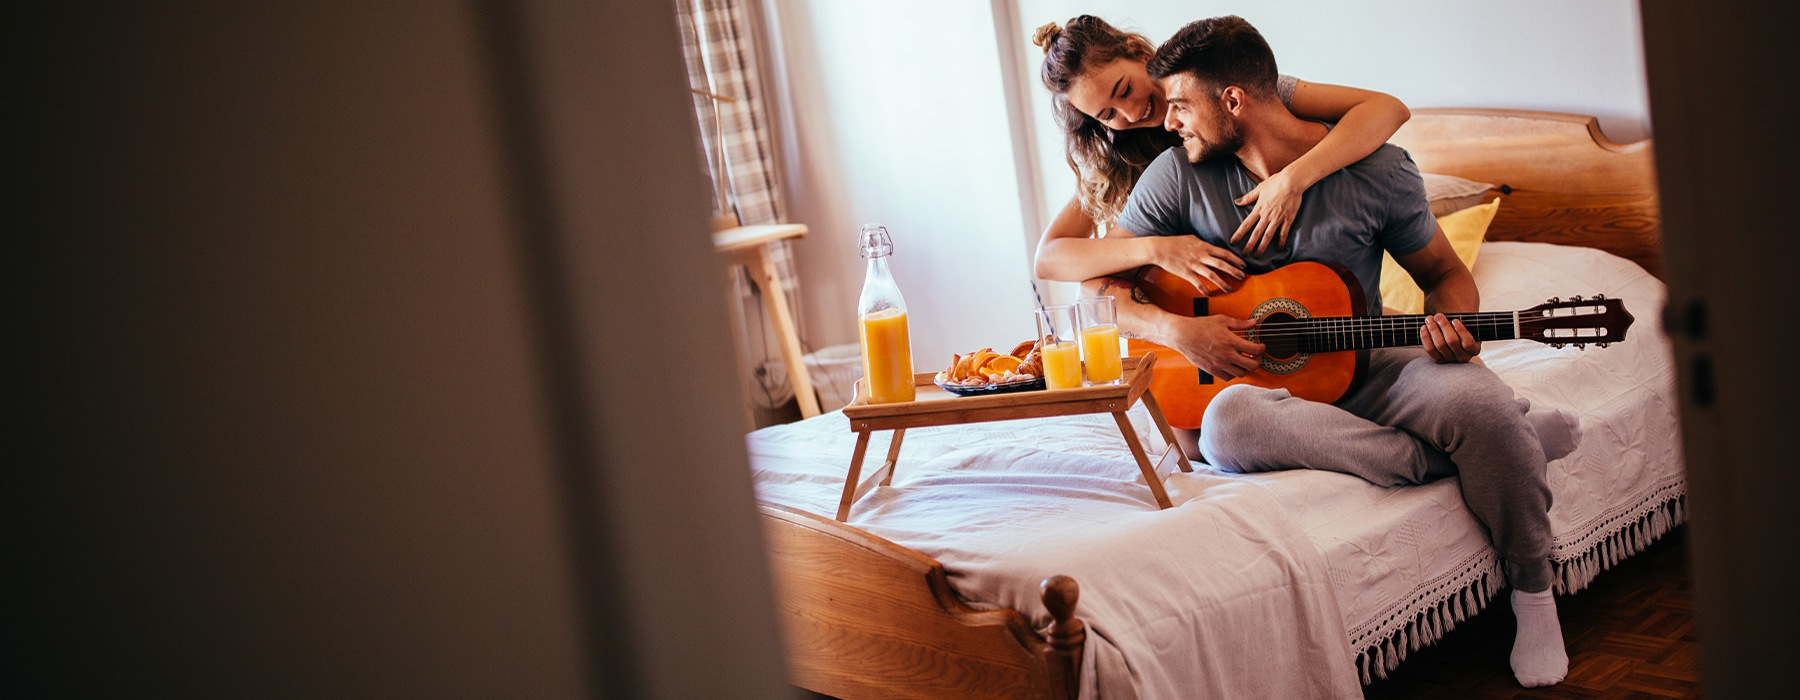 A couple is sitting on the bed playing an acoustic guitar.